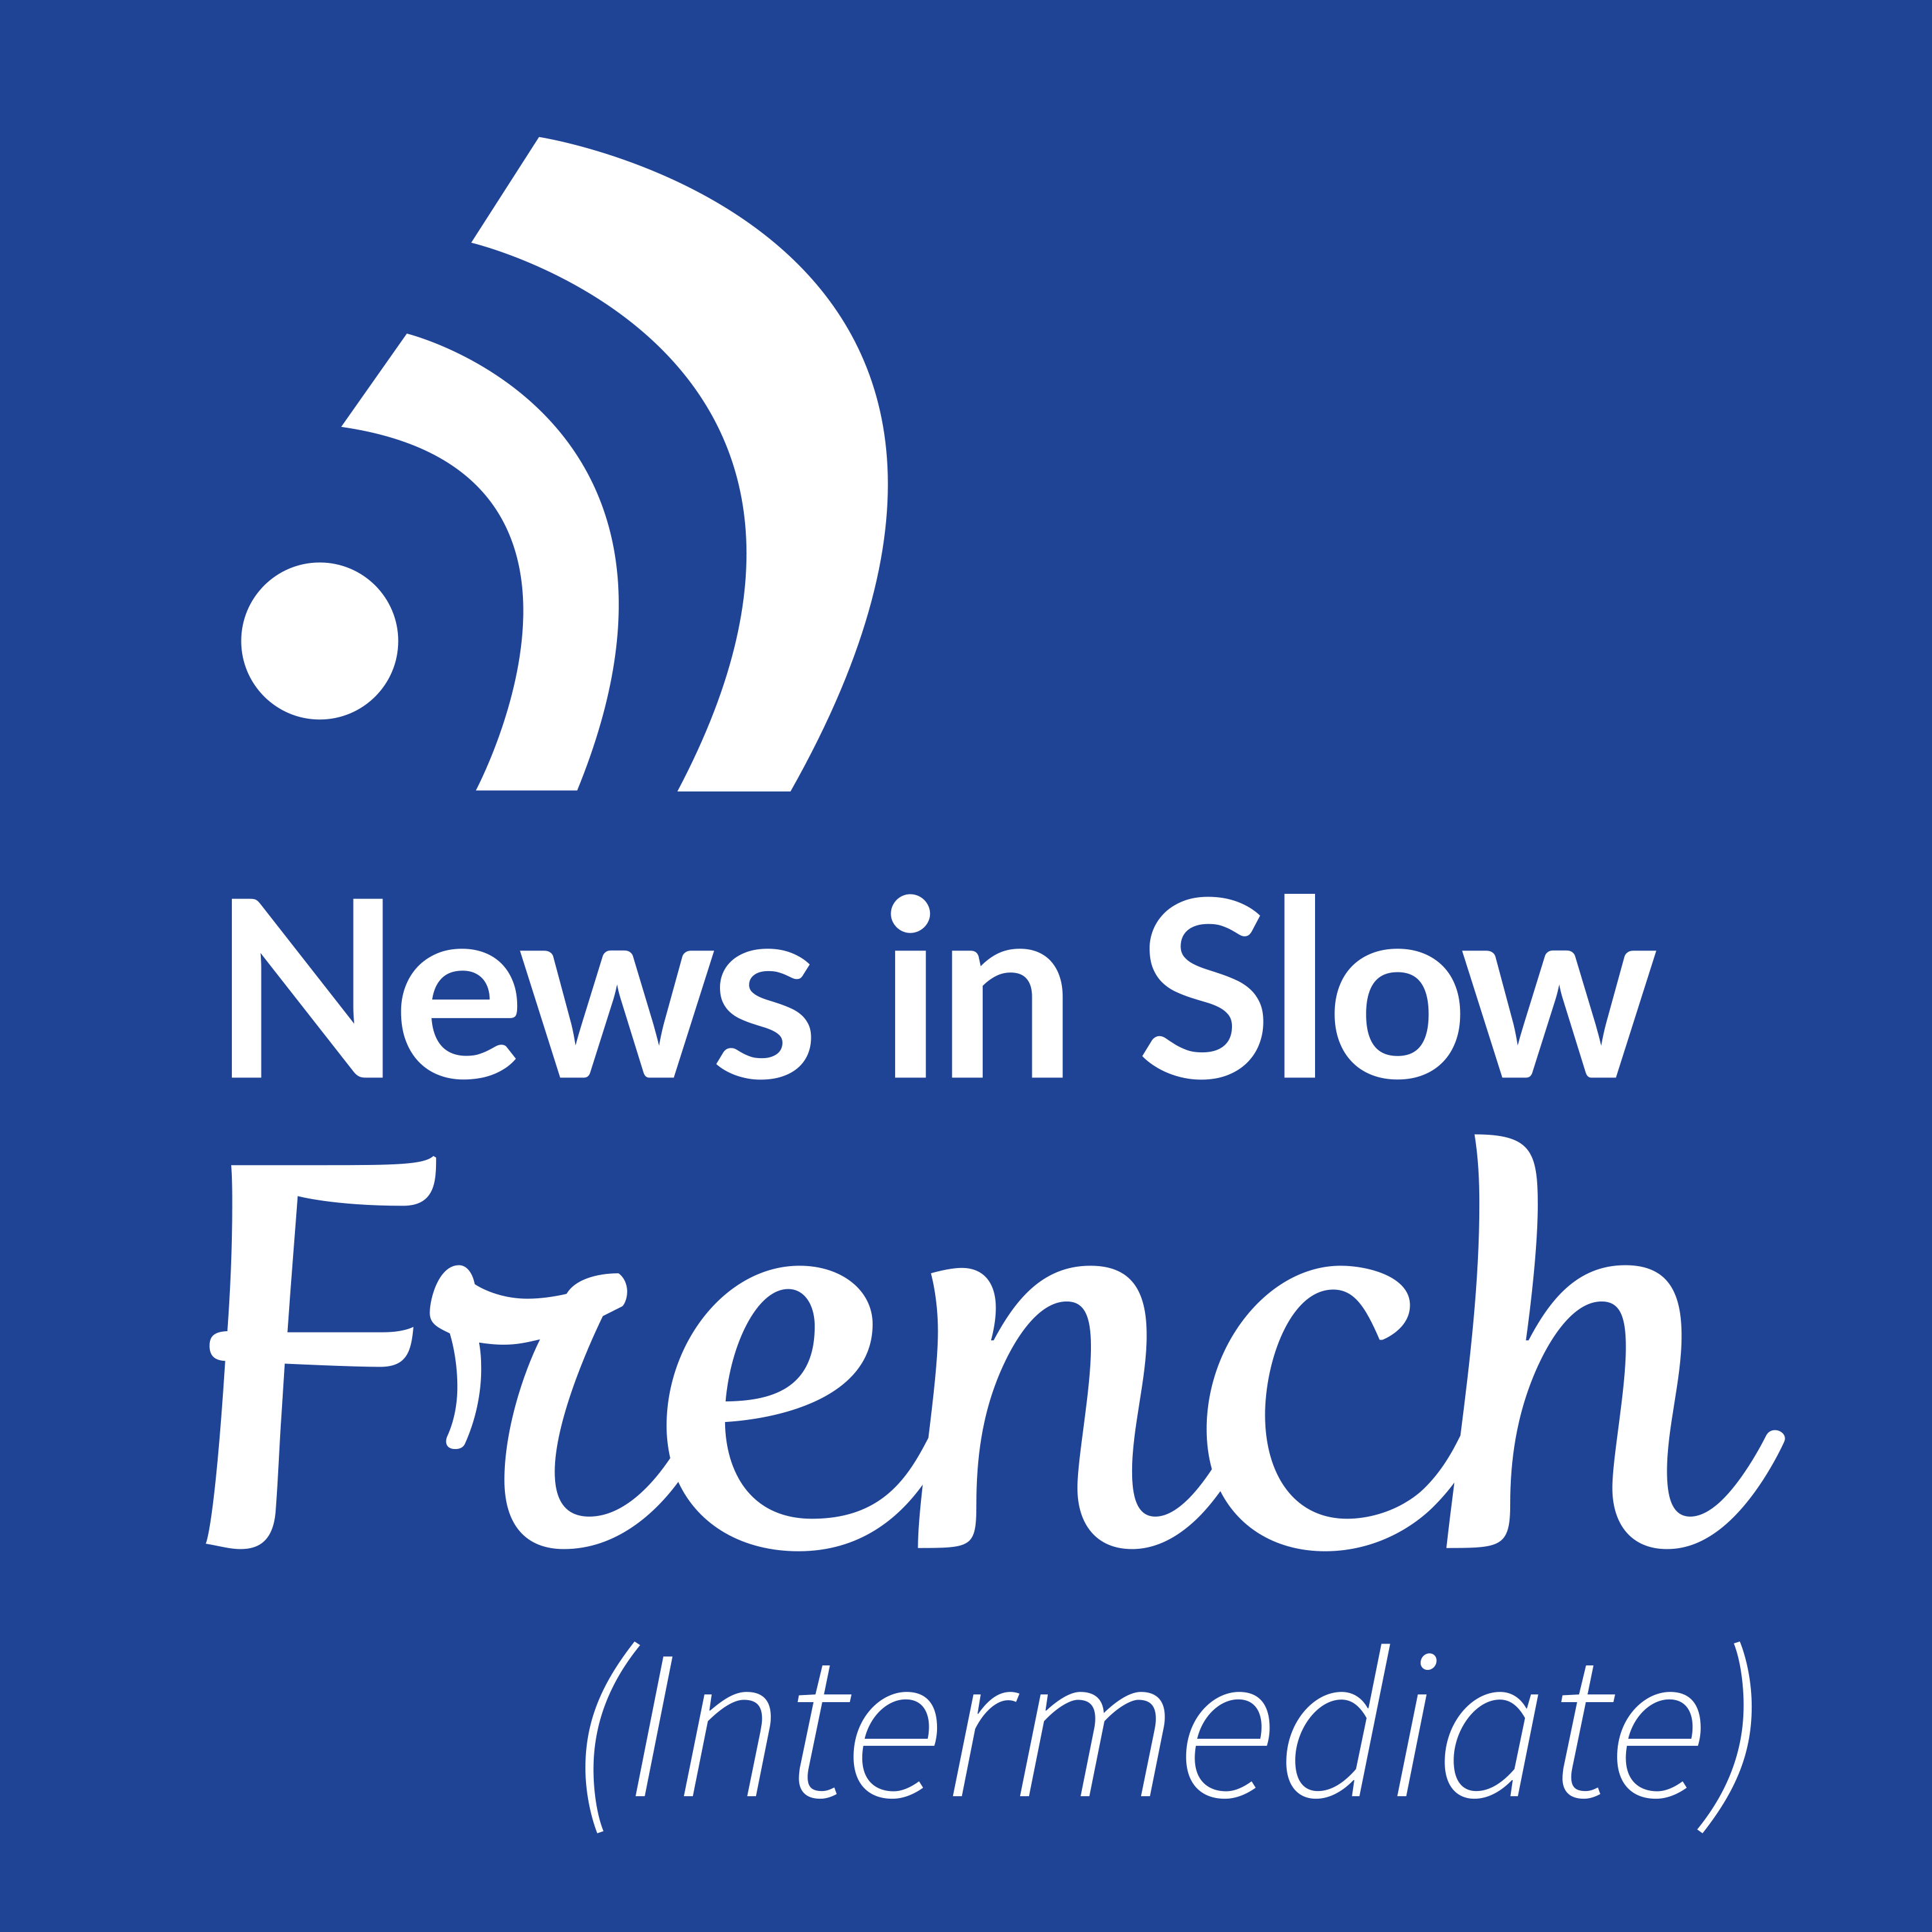 News in Slow French #306 - Learn French through current events